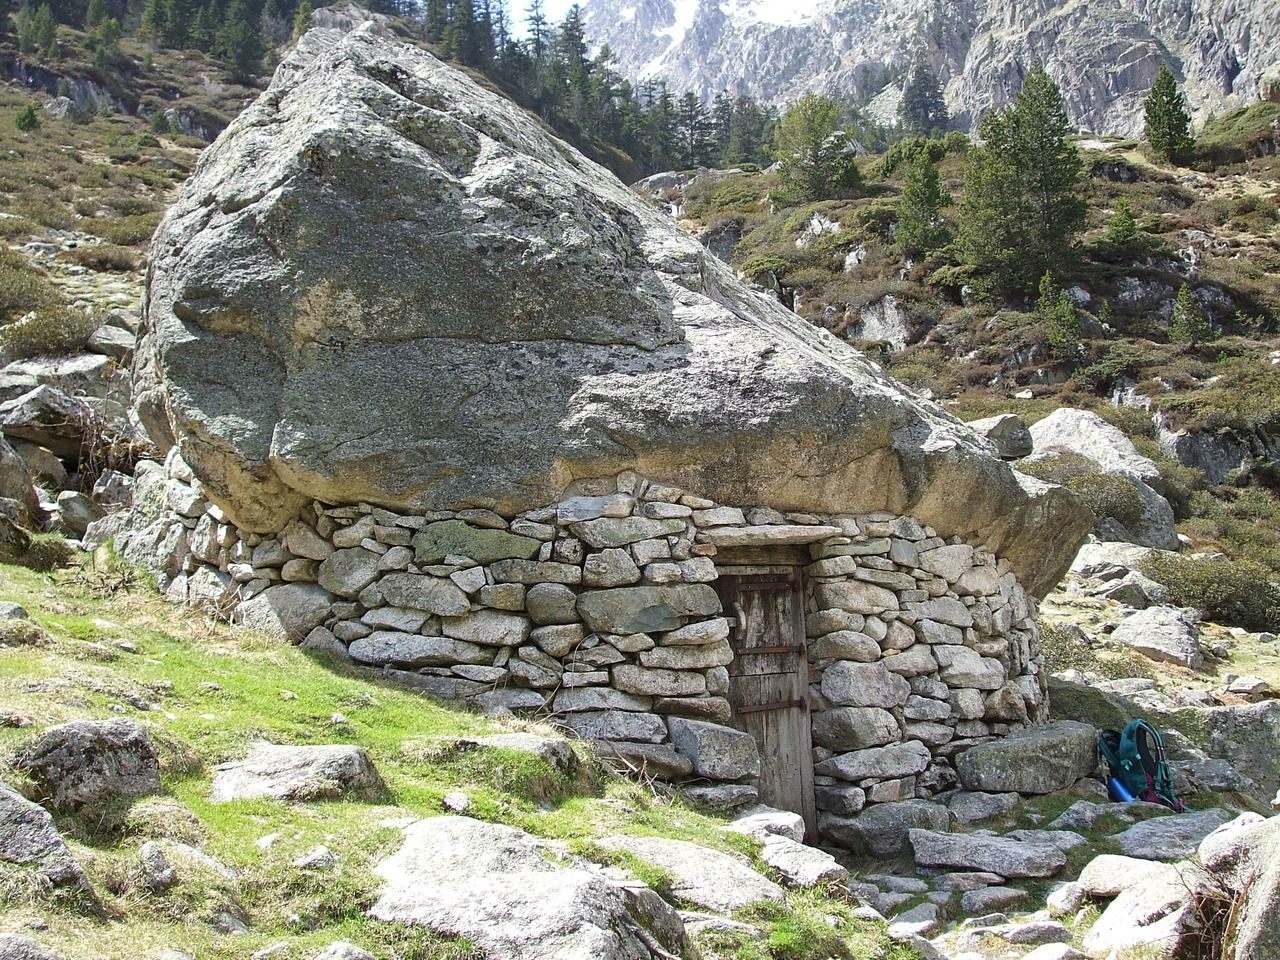 A toue (shepherd's shelter) in the Pyrénées.